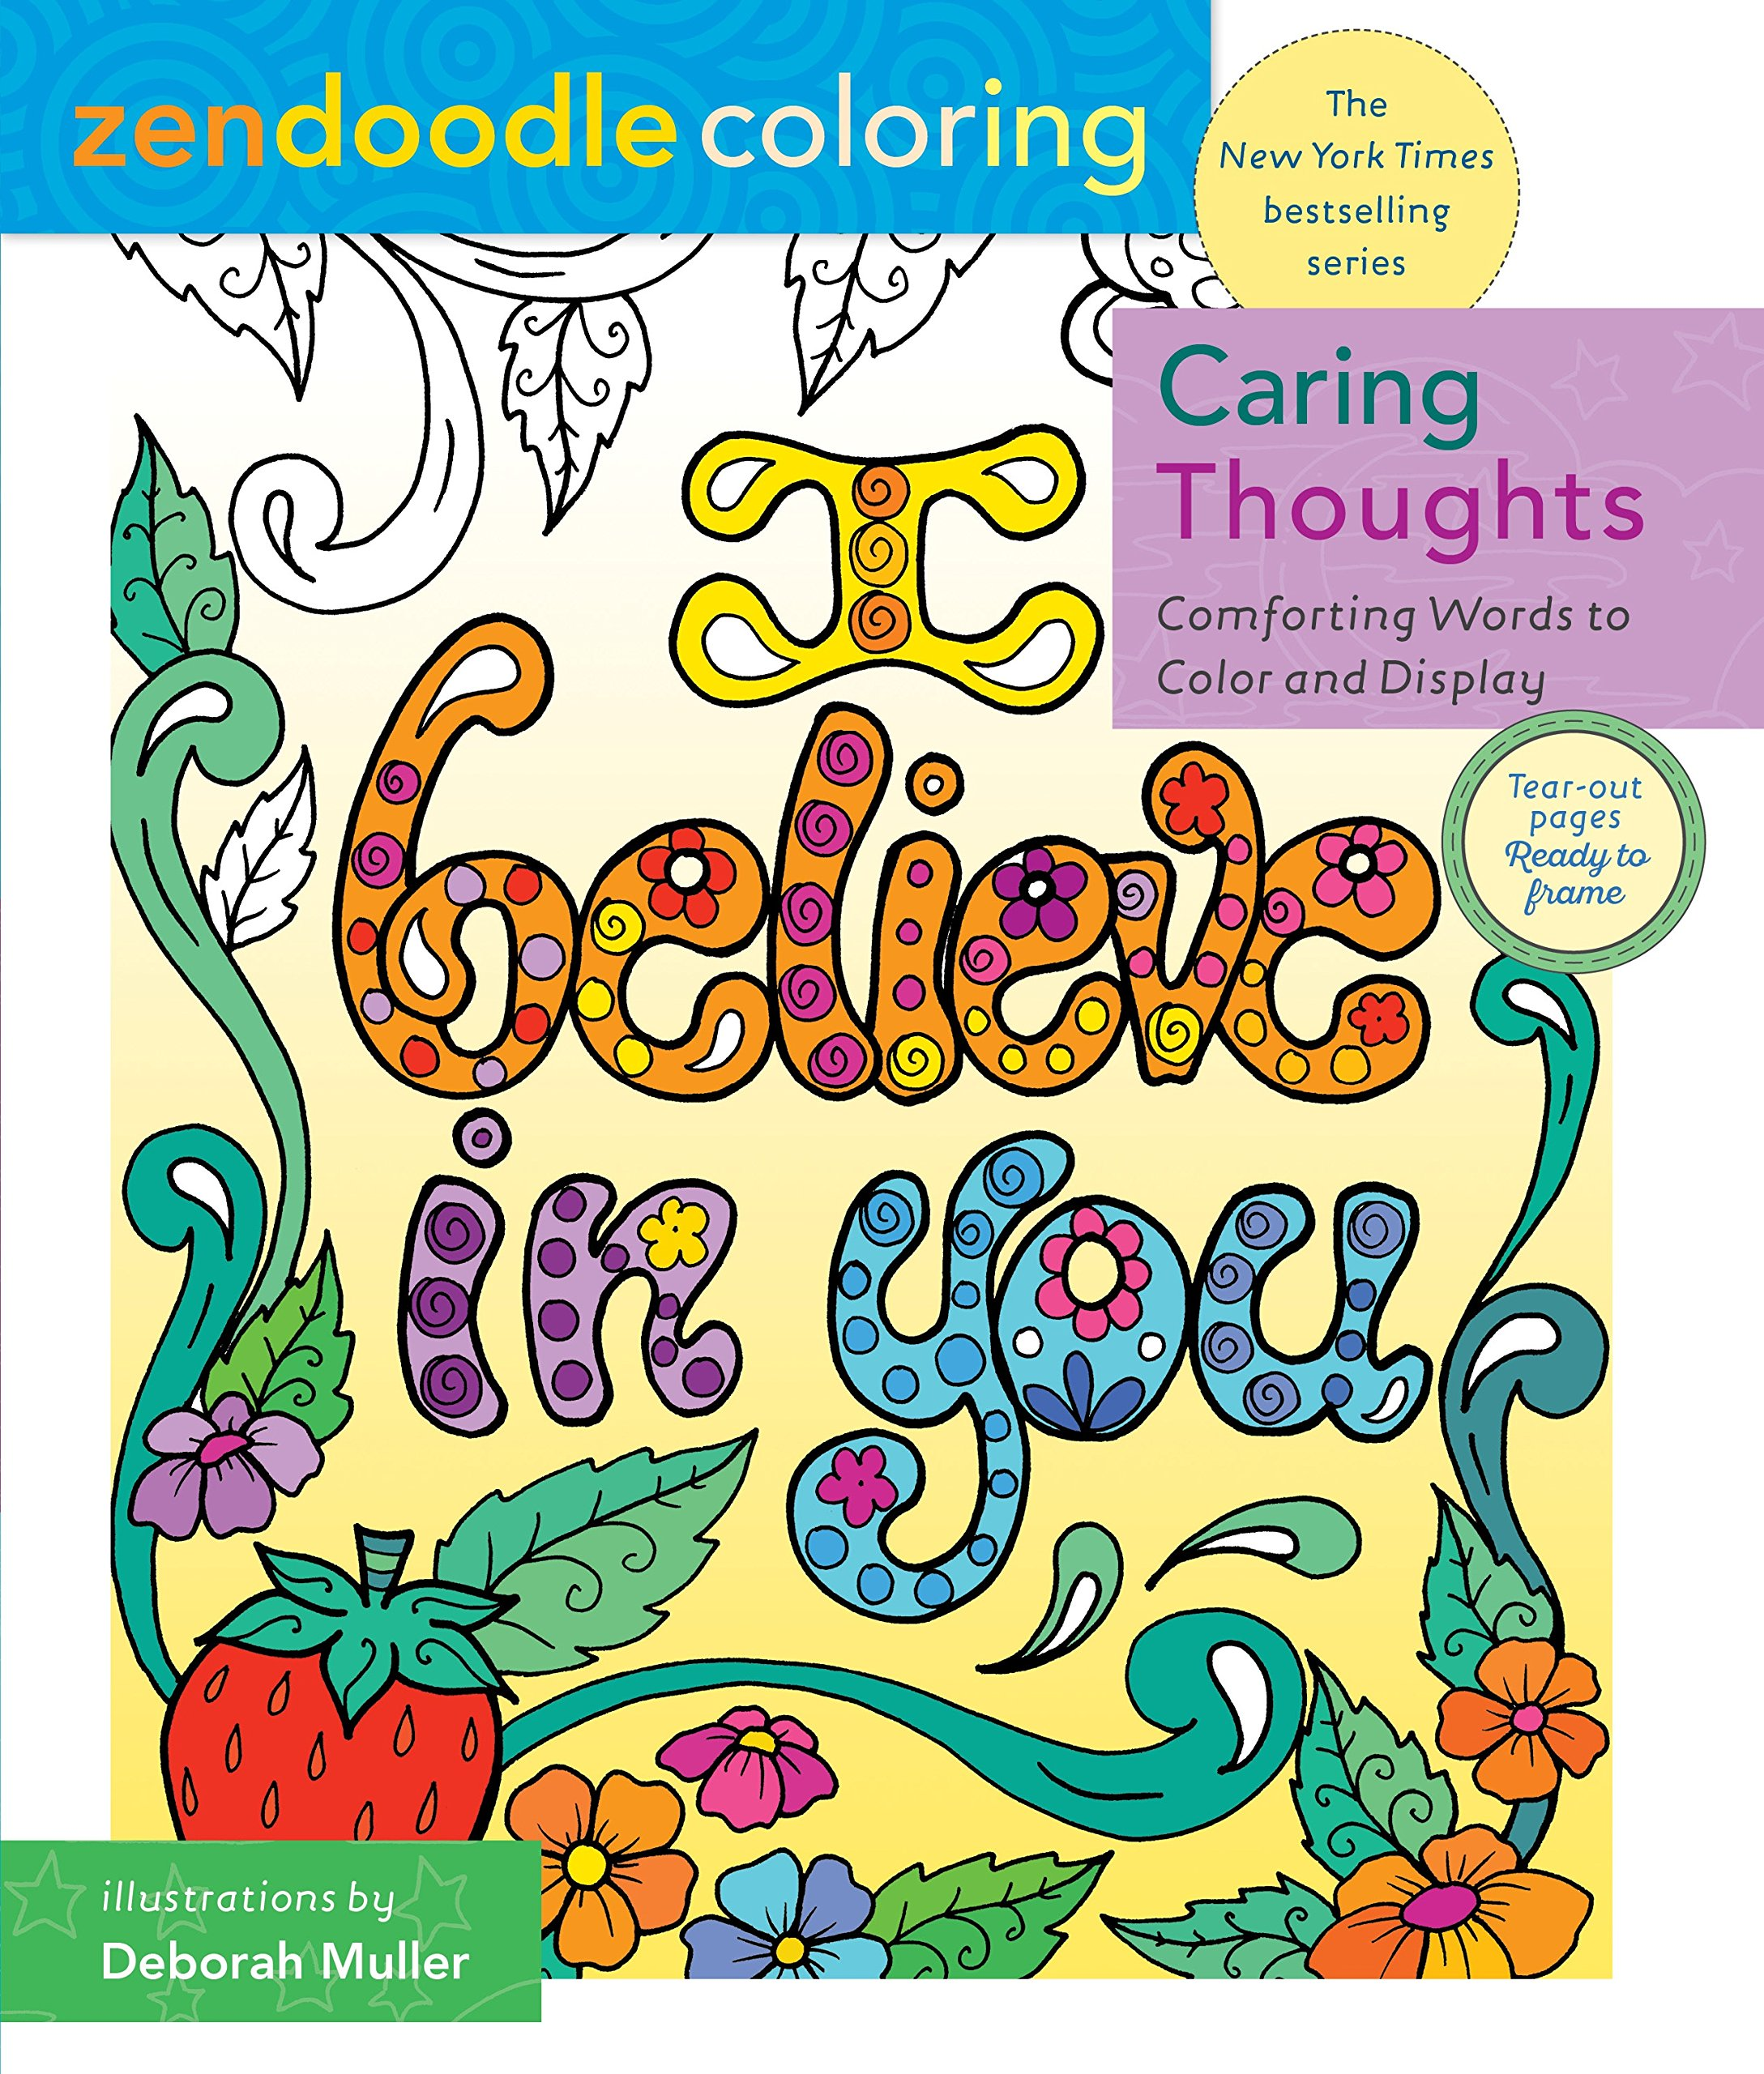 Zendoodle Coloring: Caring Thoughts: Comforting Words to Color and Display pdf